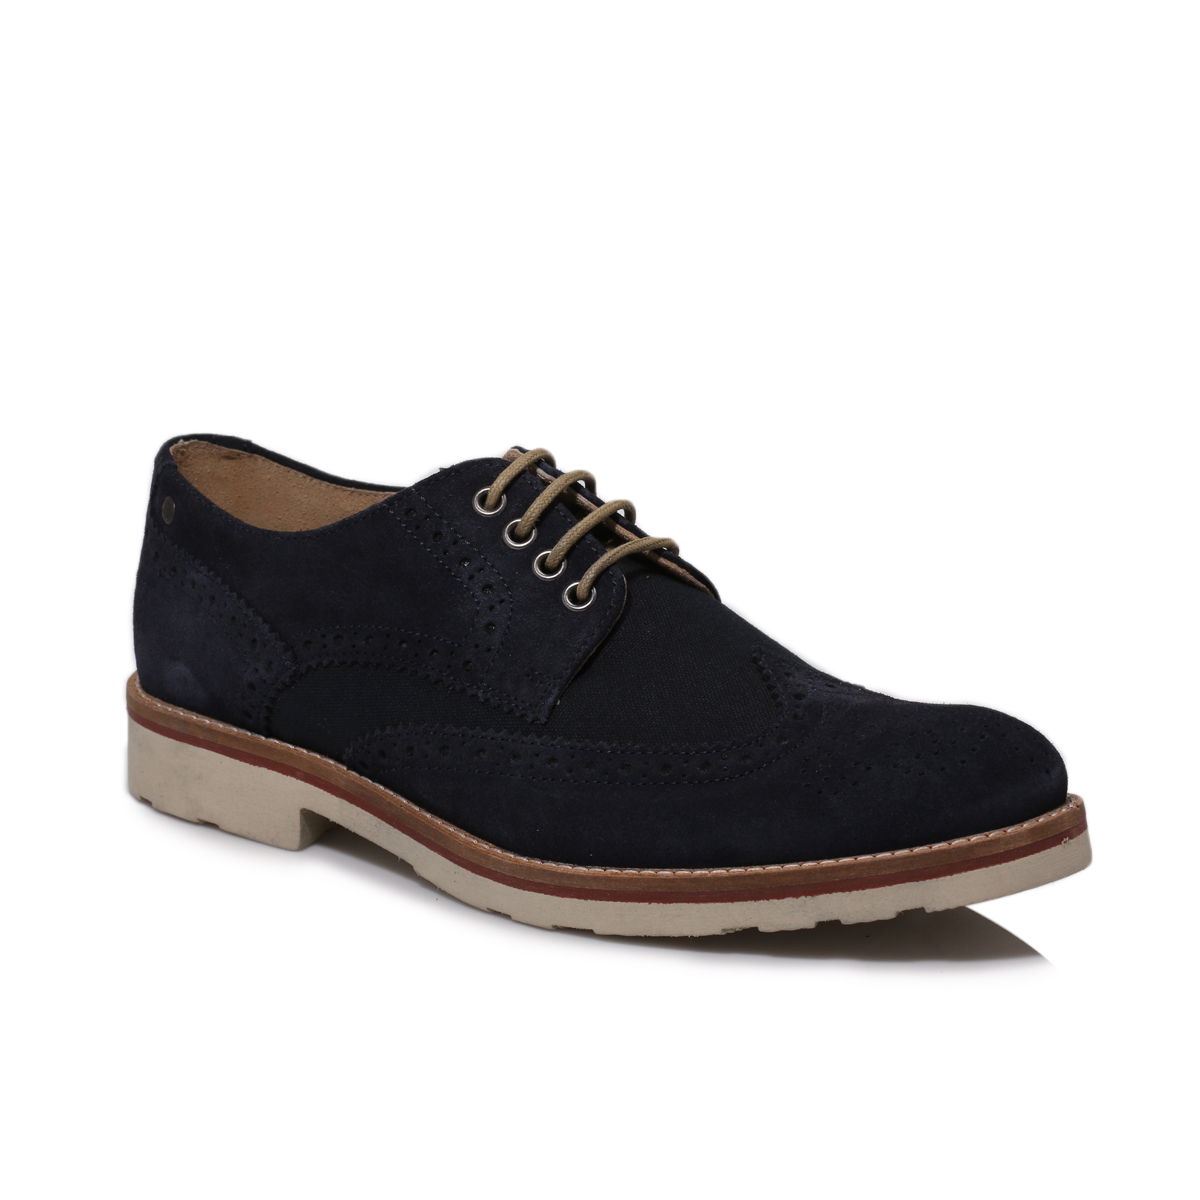 Classic and comfortable, a pair of men's suede shoes has a sought-after smart-casual versatility that can't be beaten. Browse the range to discover suede fashion trainers in dark hues like black and navy, as well as loafers in earthy brown and tan for daytime cool.